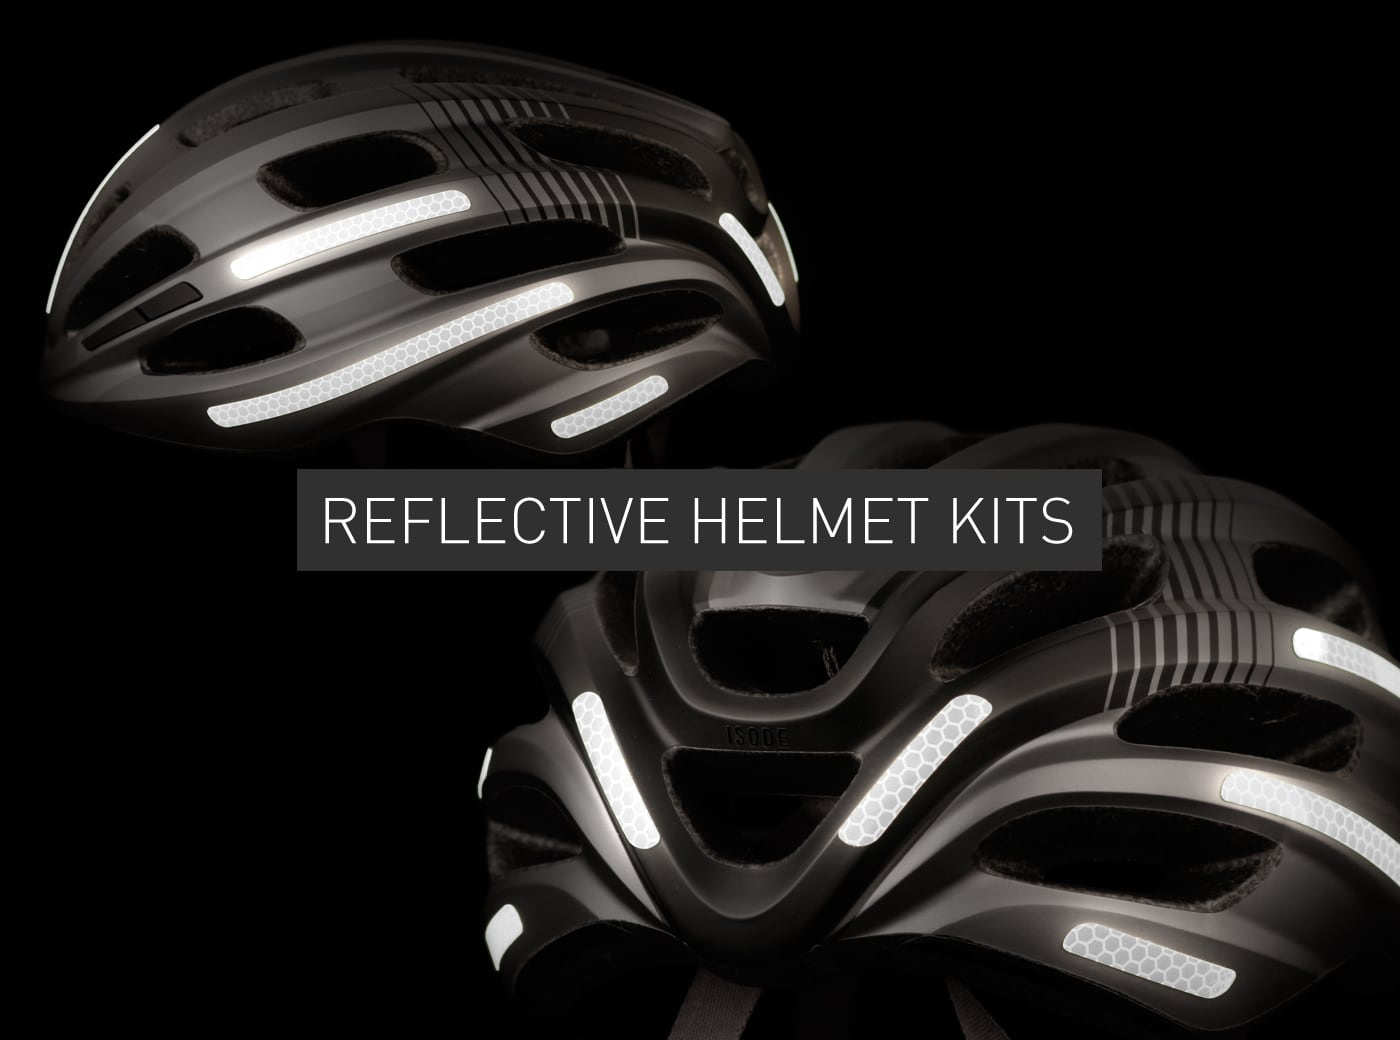 REFLECTIVE HELMET KITS